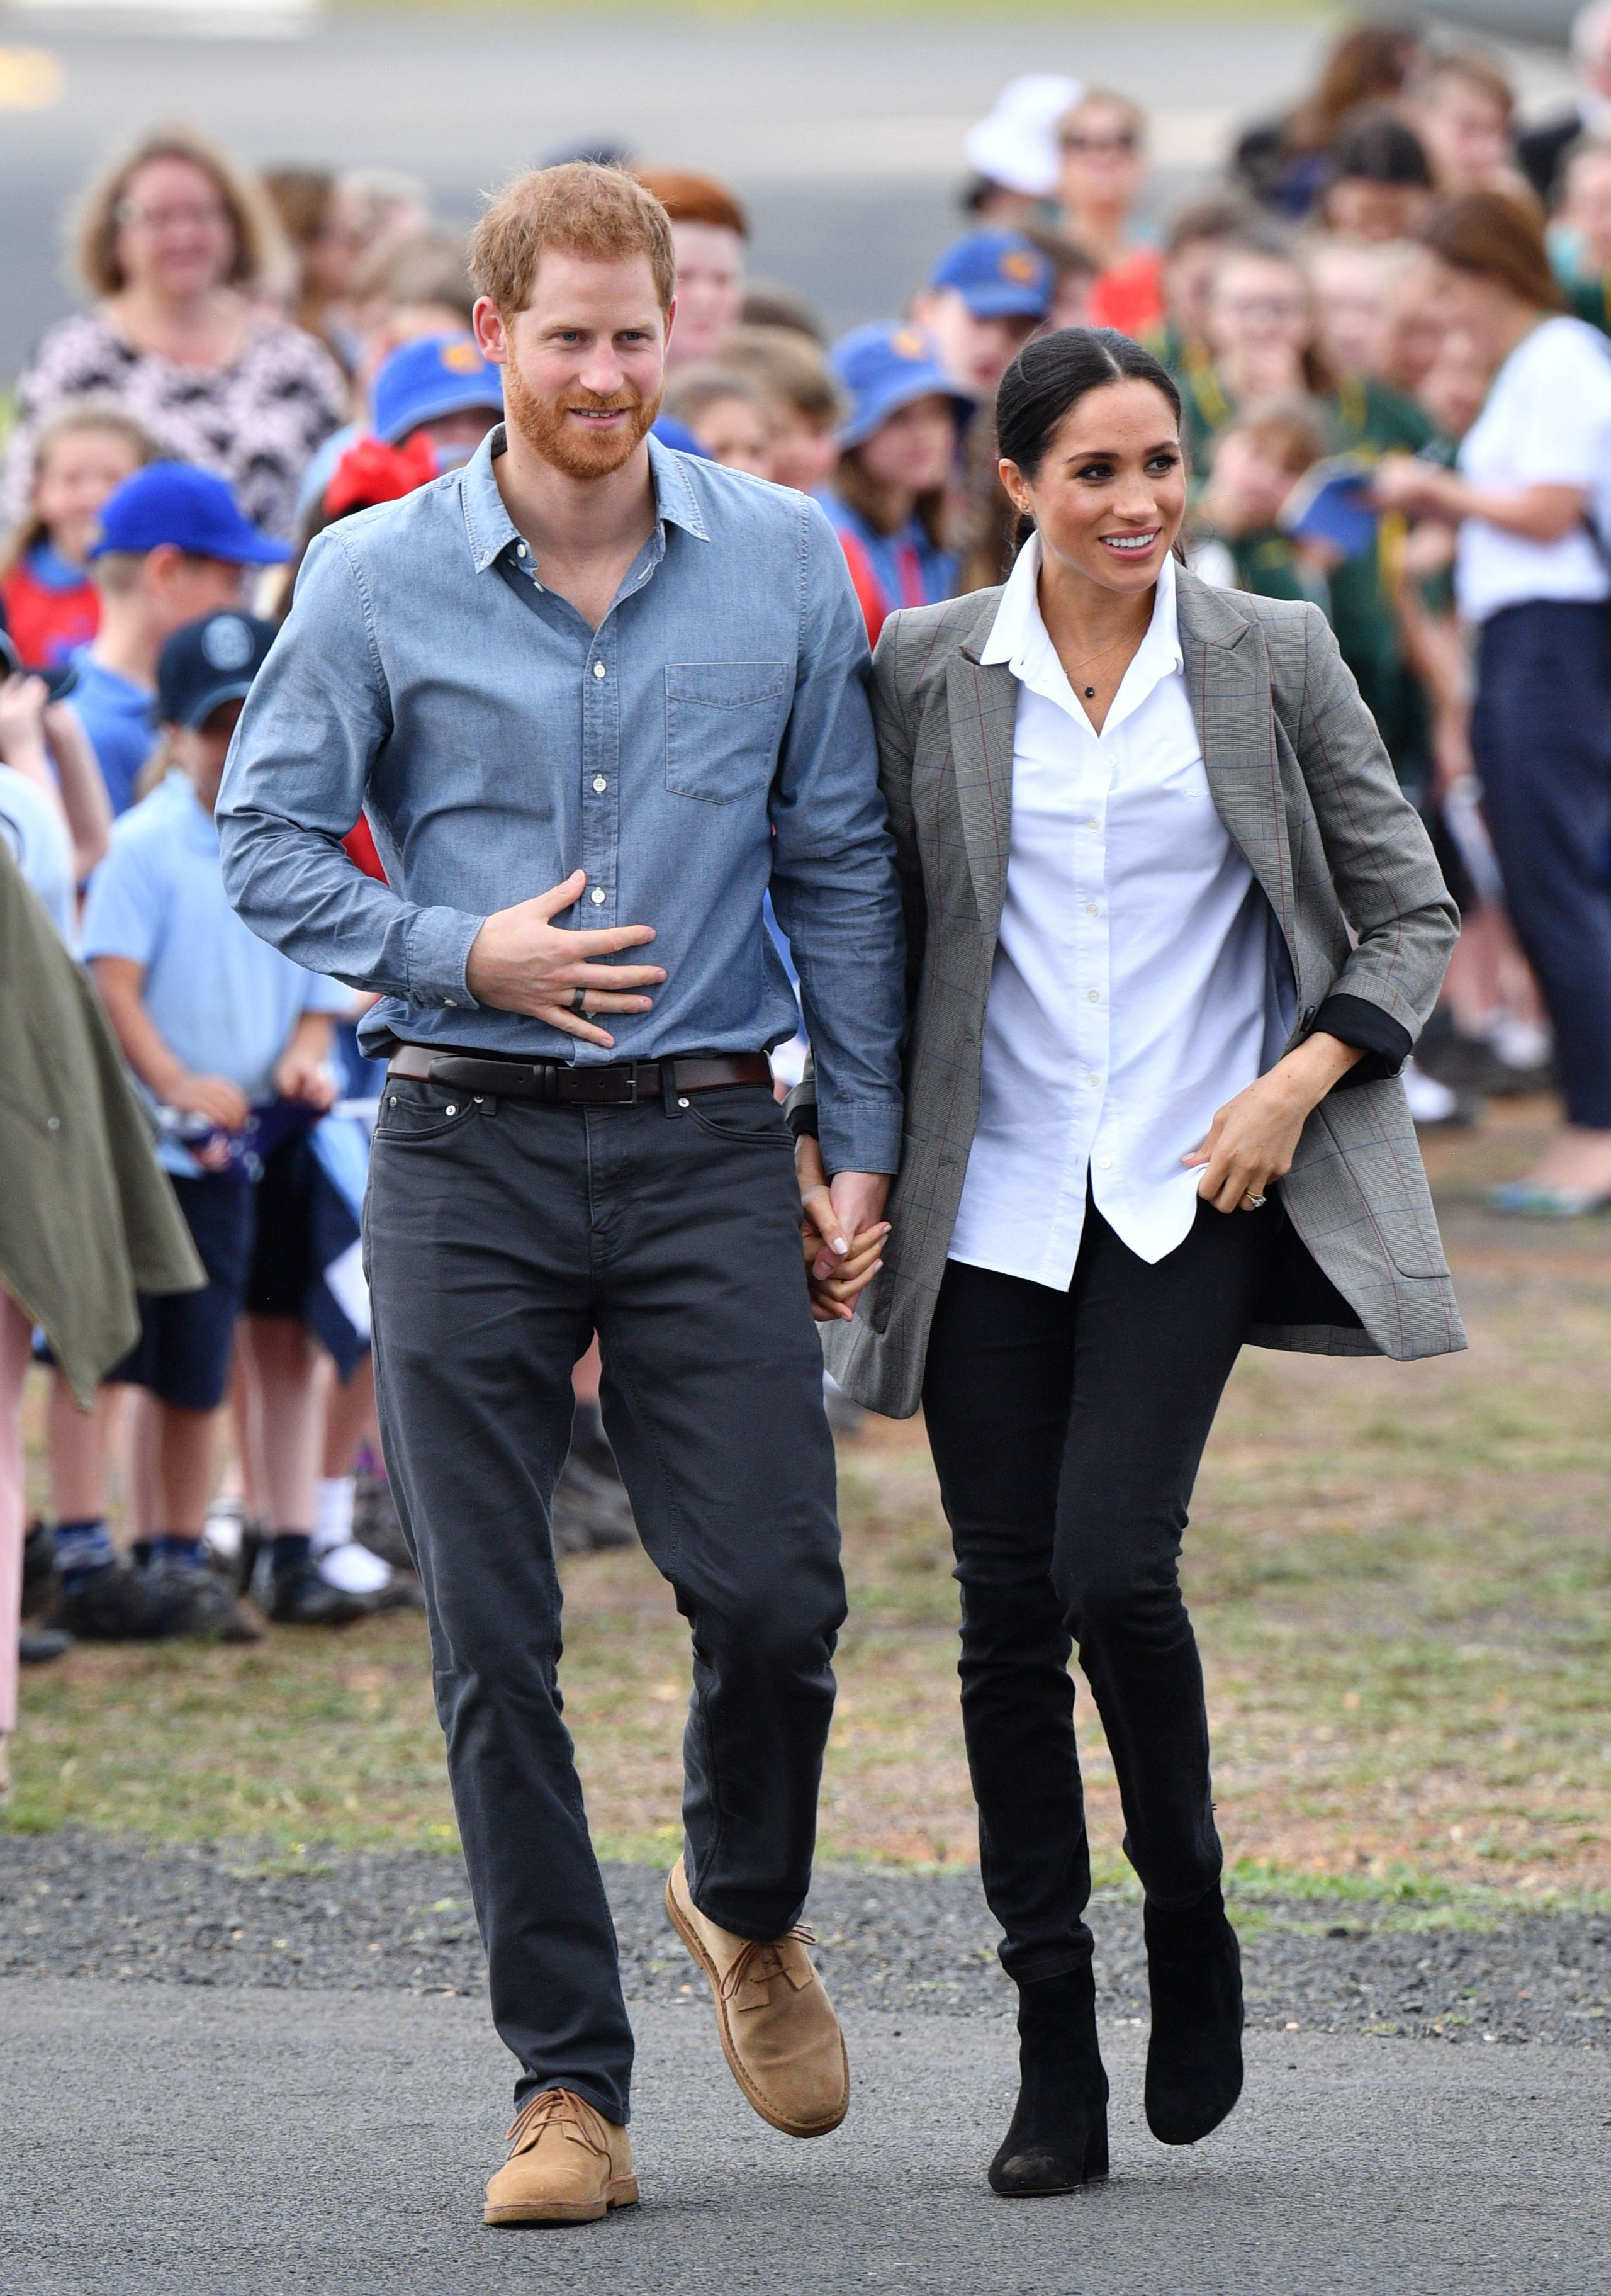 Pool - No RestrictionsMandatory Credit: Photo by Tim Rooke/REX/Shutterstock (9934576ab)Prince Harry and Meghan Duchess of SussexPrince Harry and Meghan Duchess of Sussex tour of Australia - 17 Oct 2018Greeted by the Mayor of Dubbo Region, Councillor Ben Shields and a welcoming party. Their Royal Highnesses will be meeting local school children.